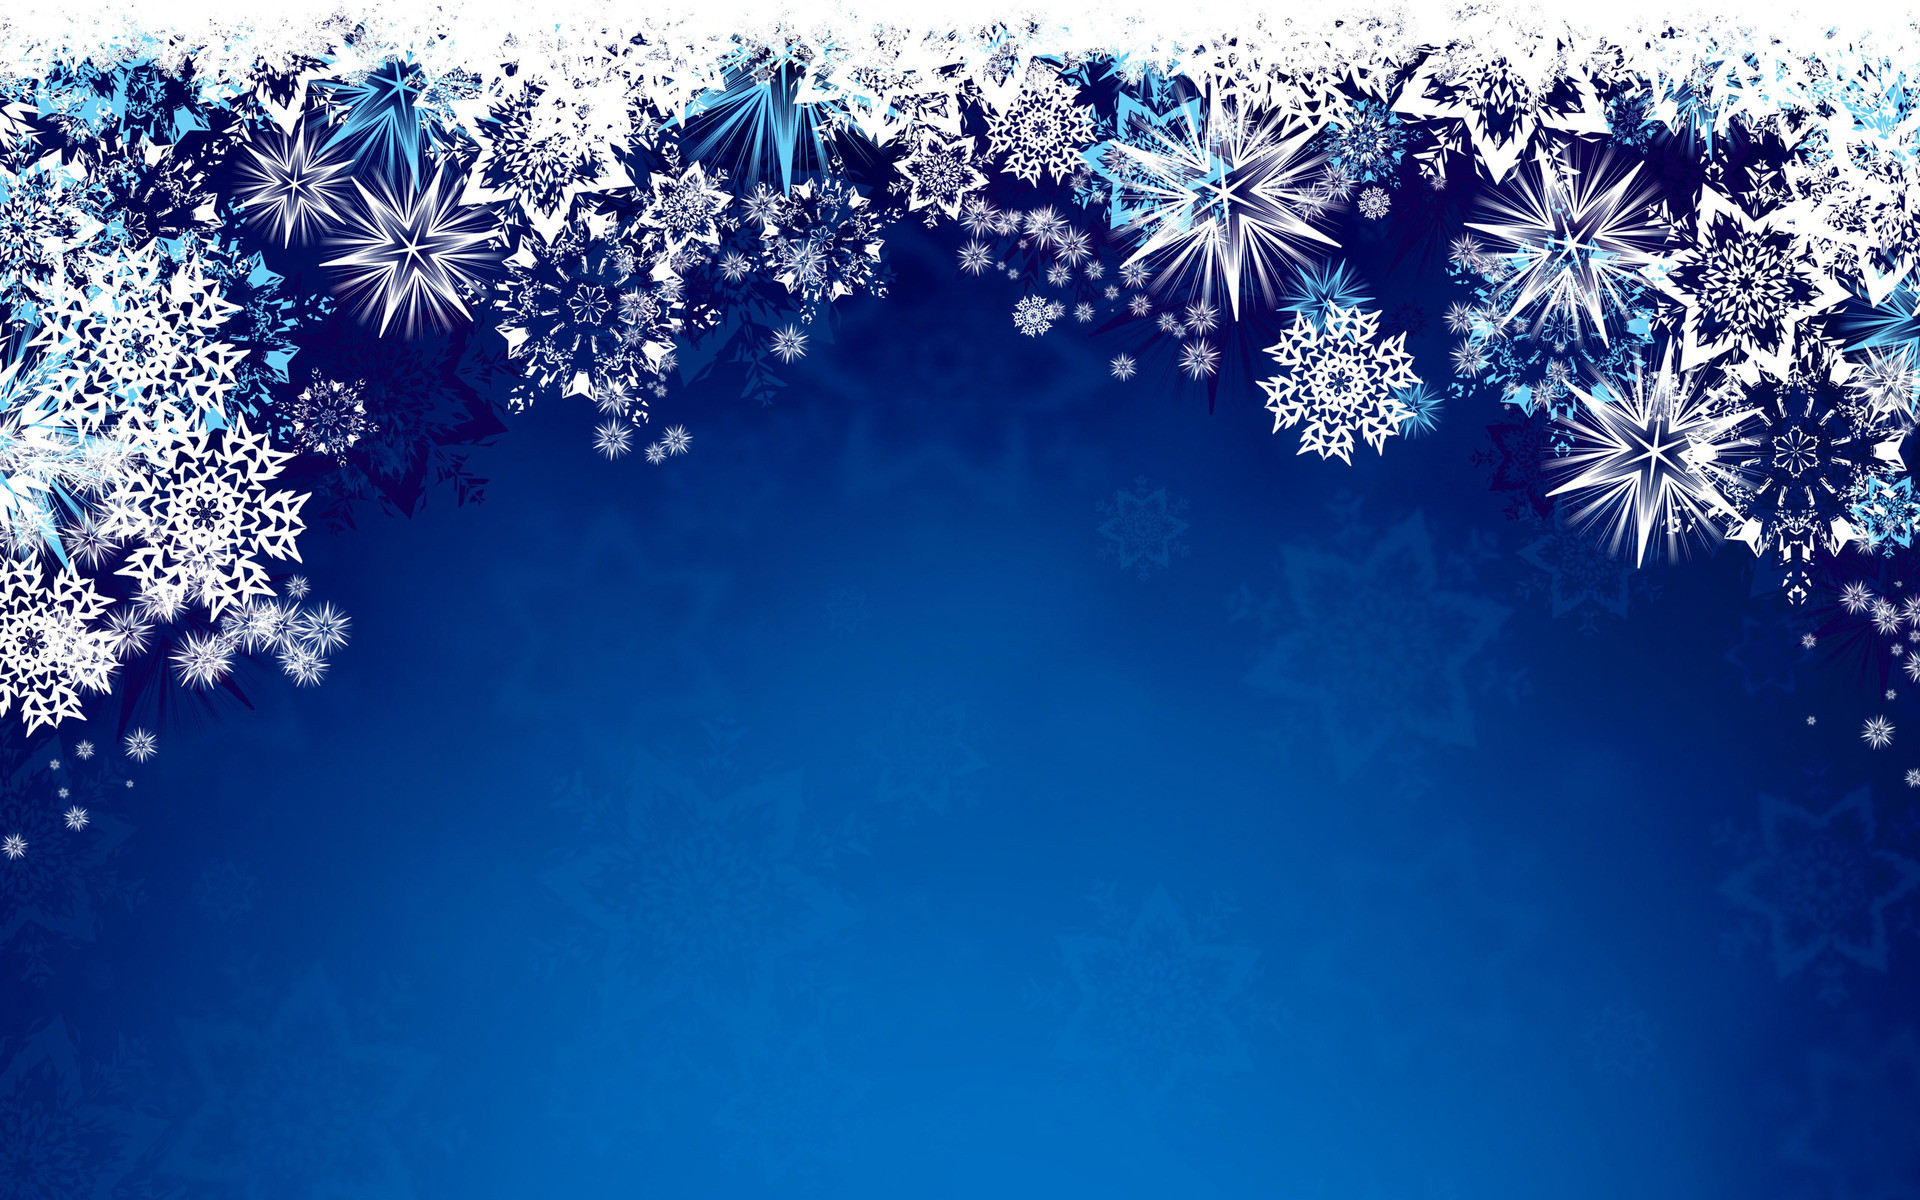 pictures photos snowflake wallpaper –  https://69hdwallpapers.com/pictures-photos-snowflake-wallpaper/ | Free HD  Wallpapers | Pinterest